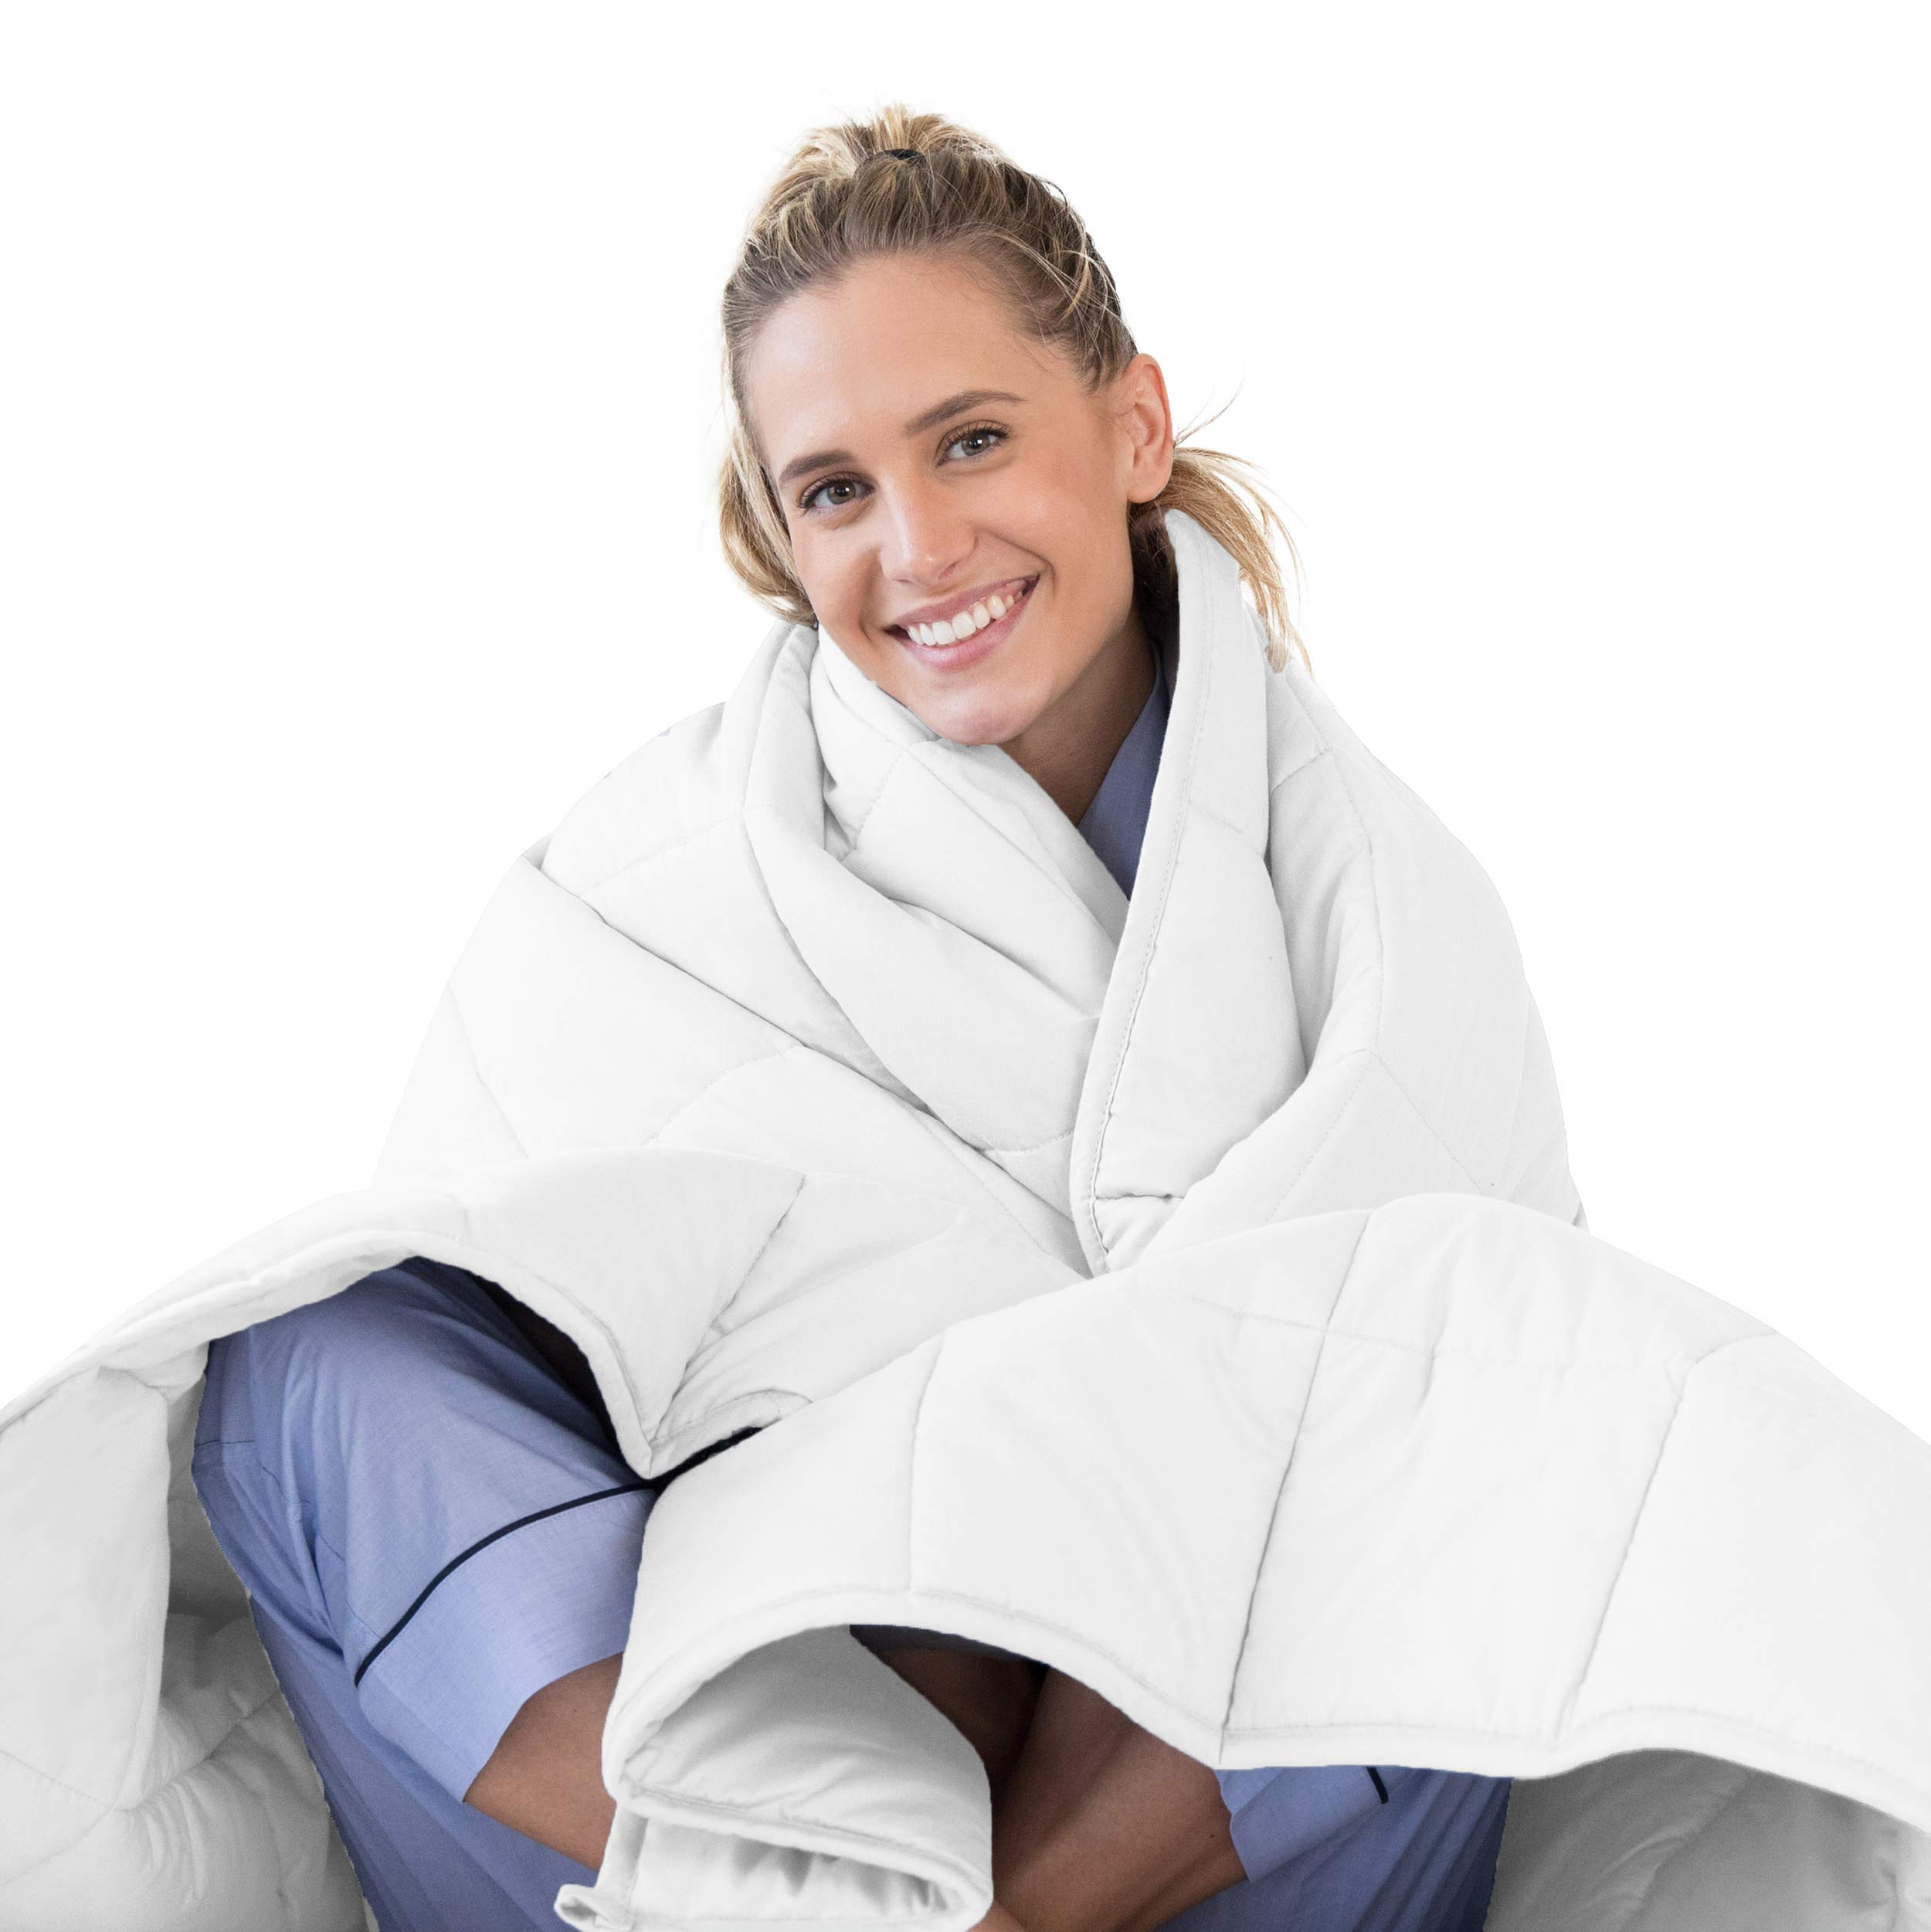 LUNA Weighted Blanket (20 lbs - 60x80 - Queen Size) - Organic Cooling Cotton & Premium Glass Beads - Designed in USA - Heavy Cool Weighted Blanket for Hot & Cold Sleepers - Kids or Adult - White by LUNA